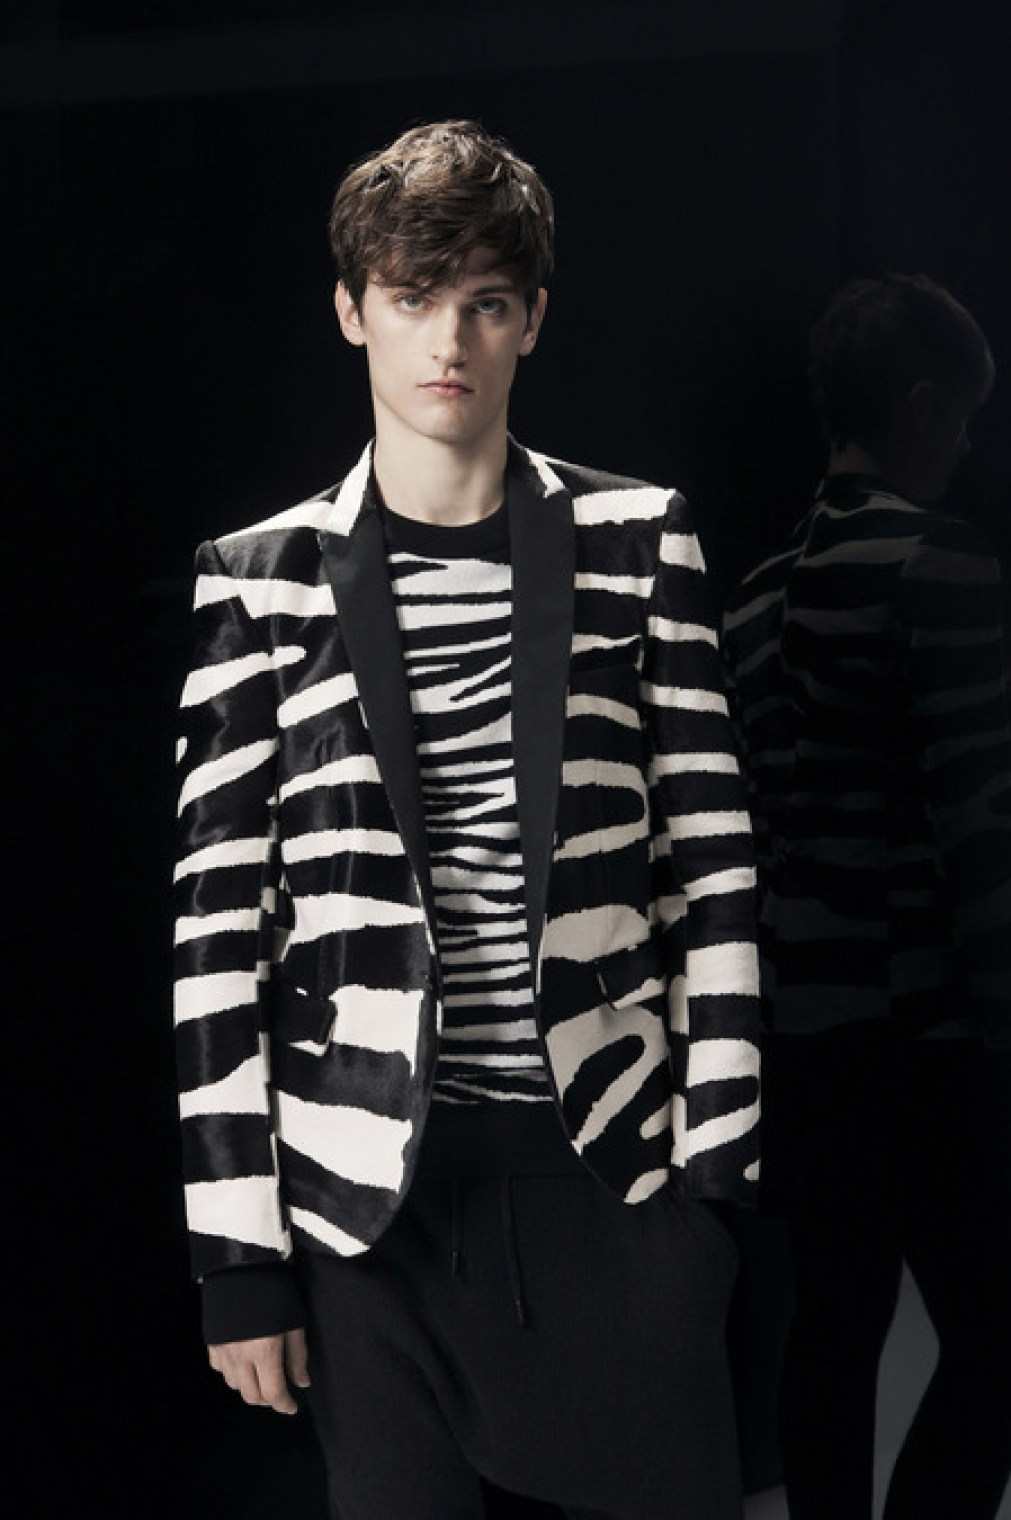 Balmain-FALL-2014-MENSWEAR_best-menswear-collections-2014_zebra-print-menswear_mens-printed-sports-jackets_good-looking-male-models_best-menswear-blogs-melbourne-australia